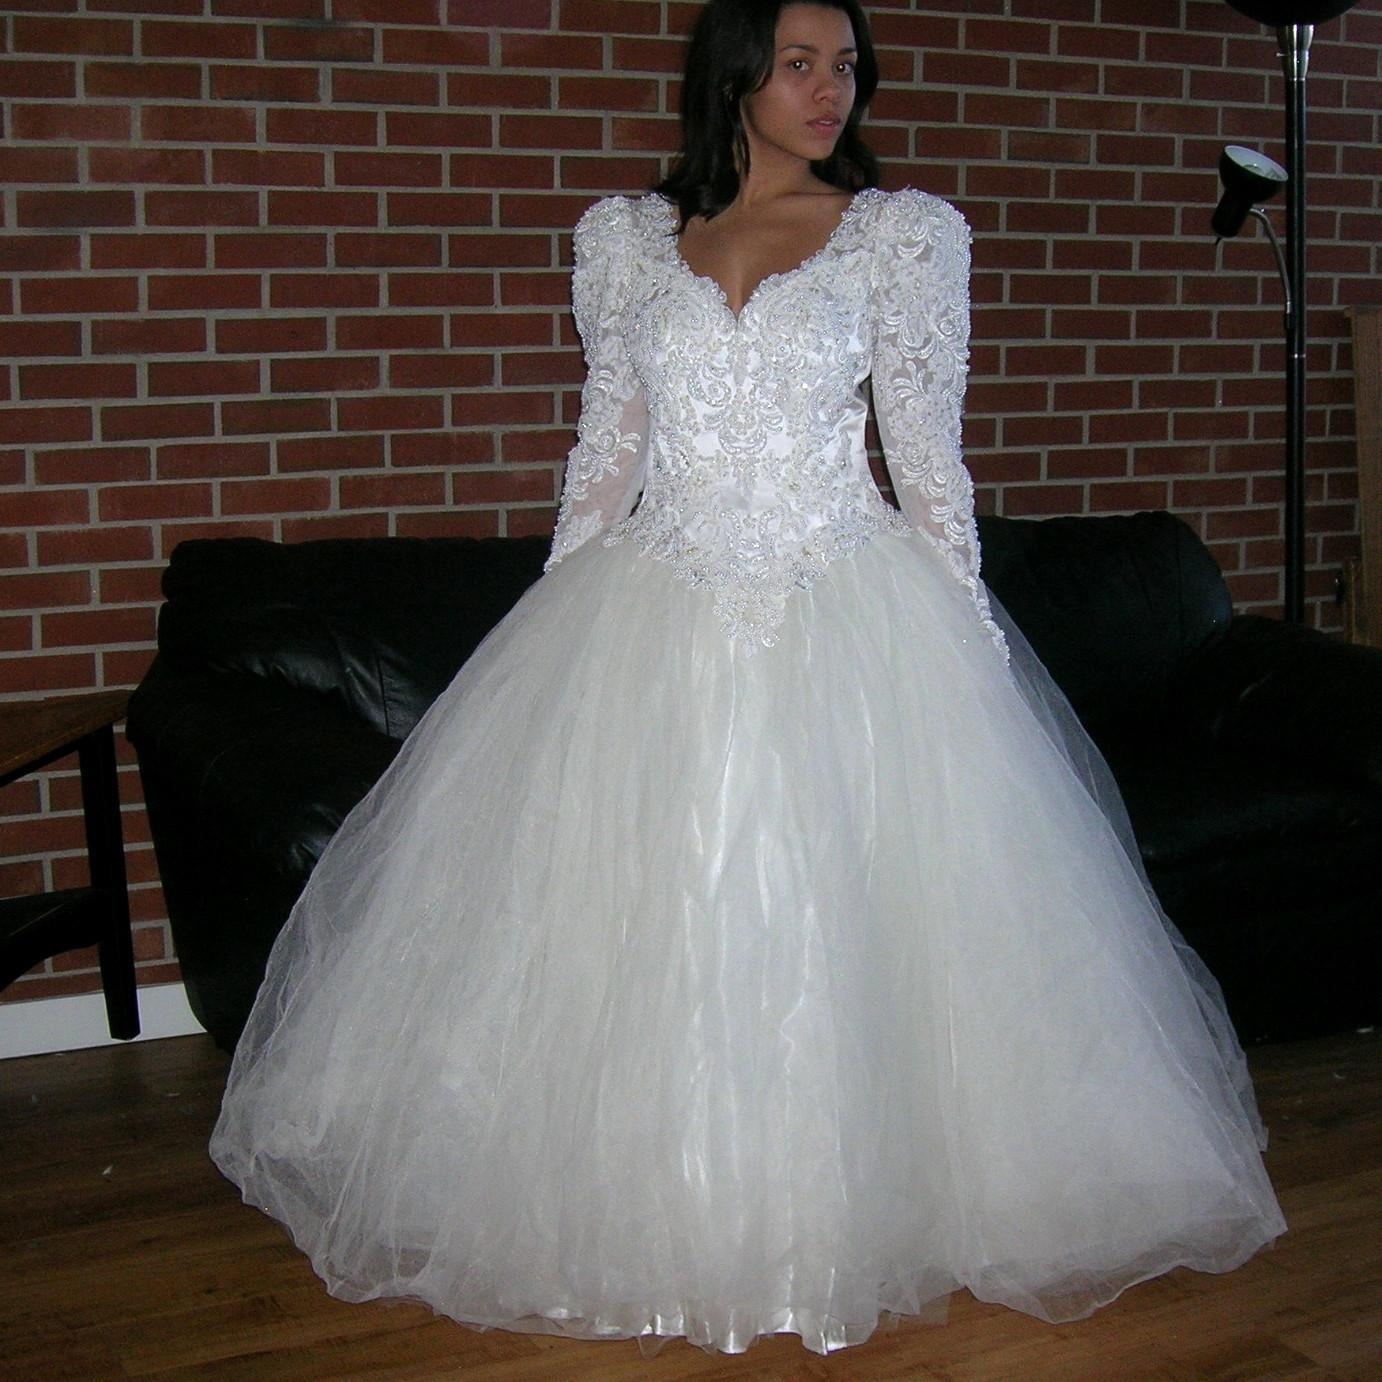 Cream Wedding Gown: Off White/Cream Satin Vintage Beaded Sequin Lace Bridal